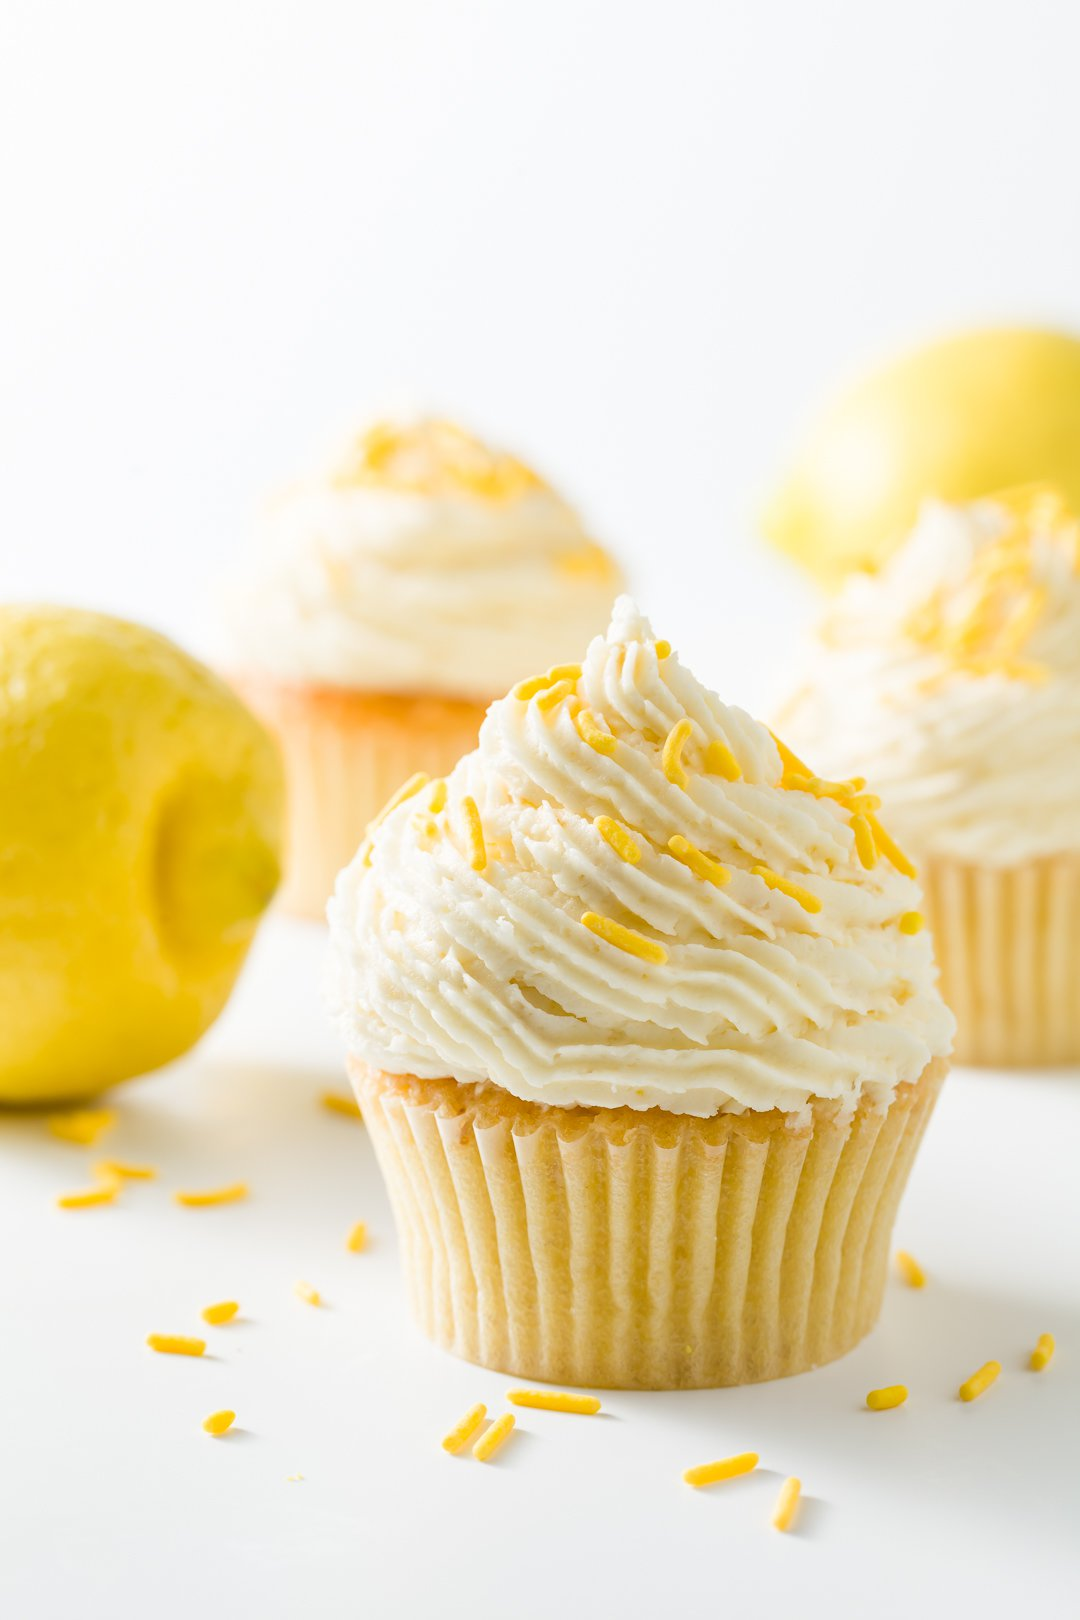 Several lemon cupcakes decorated with lemon buttercream frosting